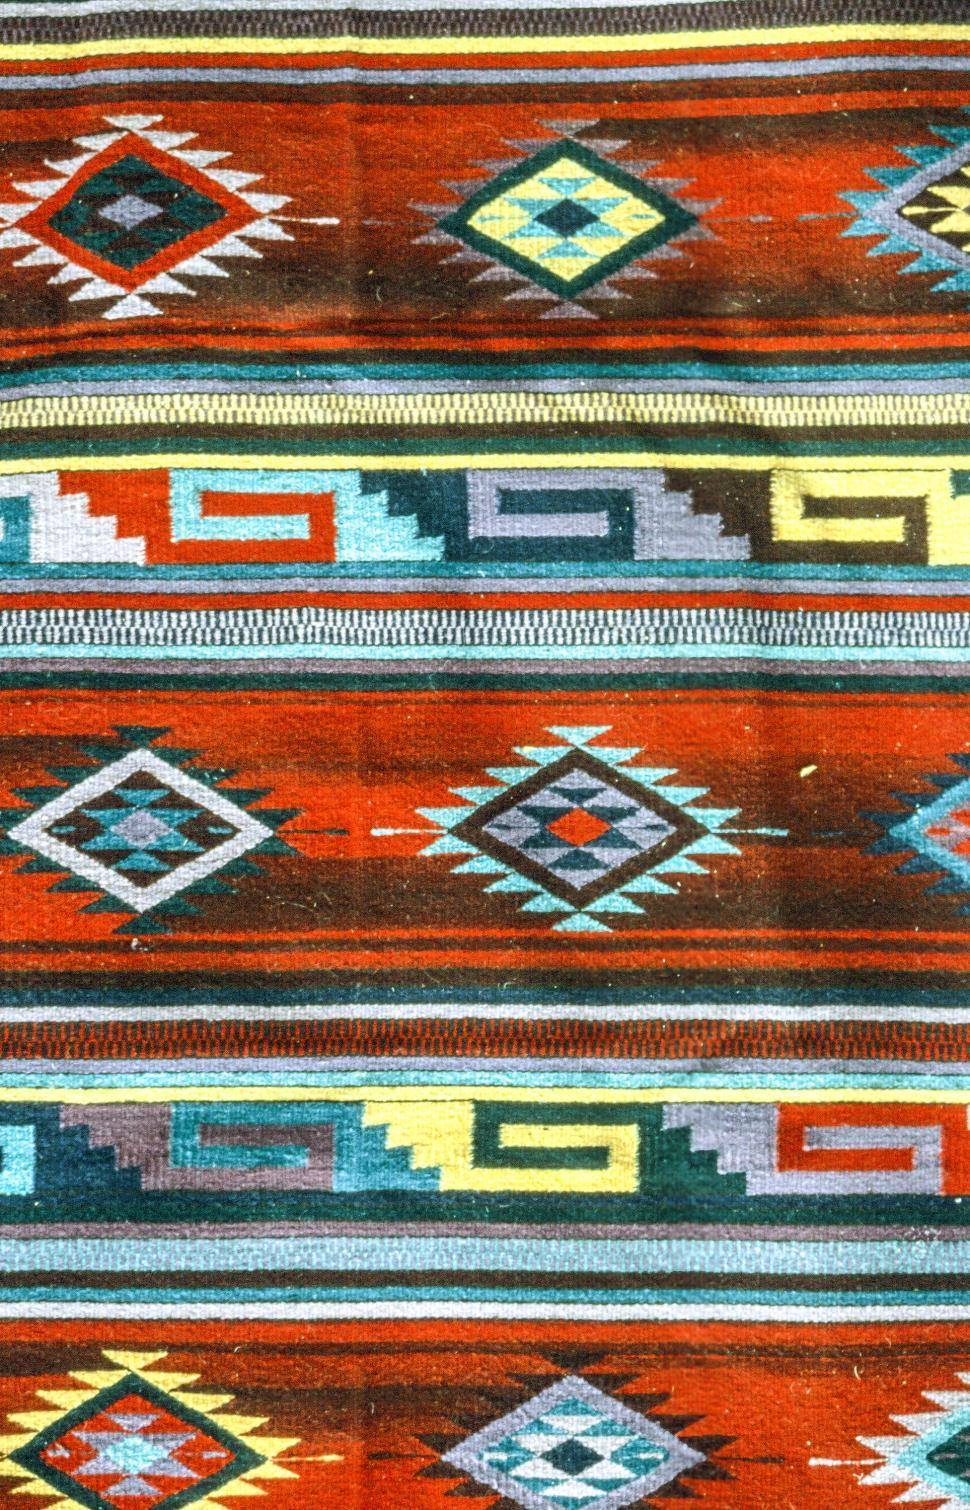 Download Free Stock HD Photo of Woven Native American Rug Online